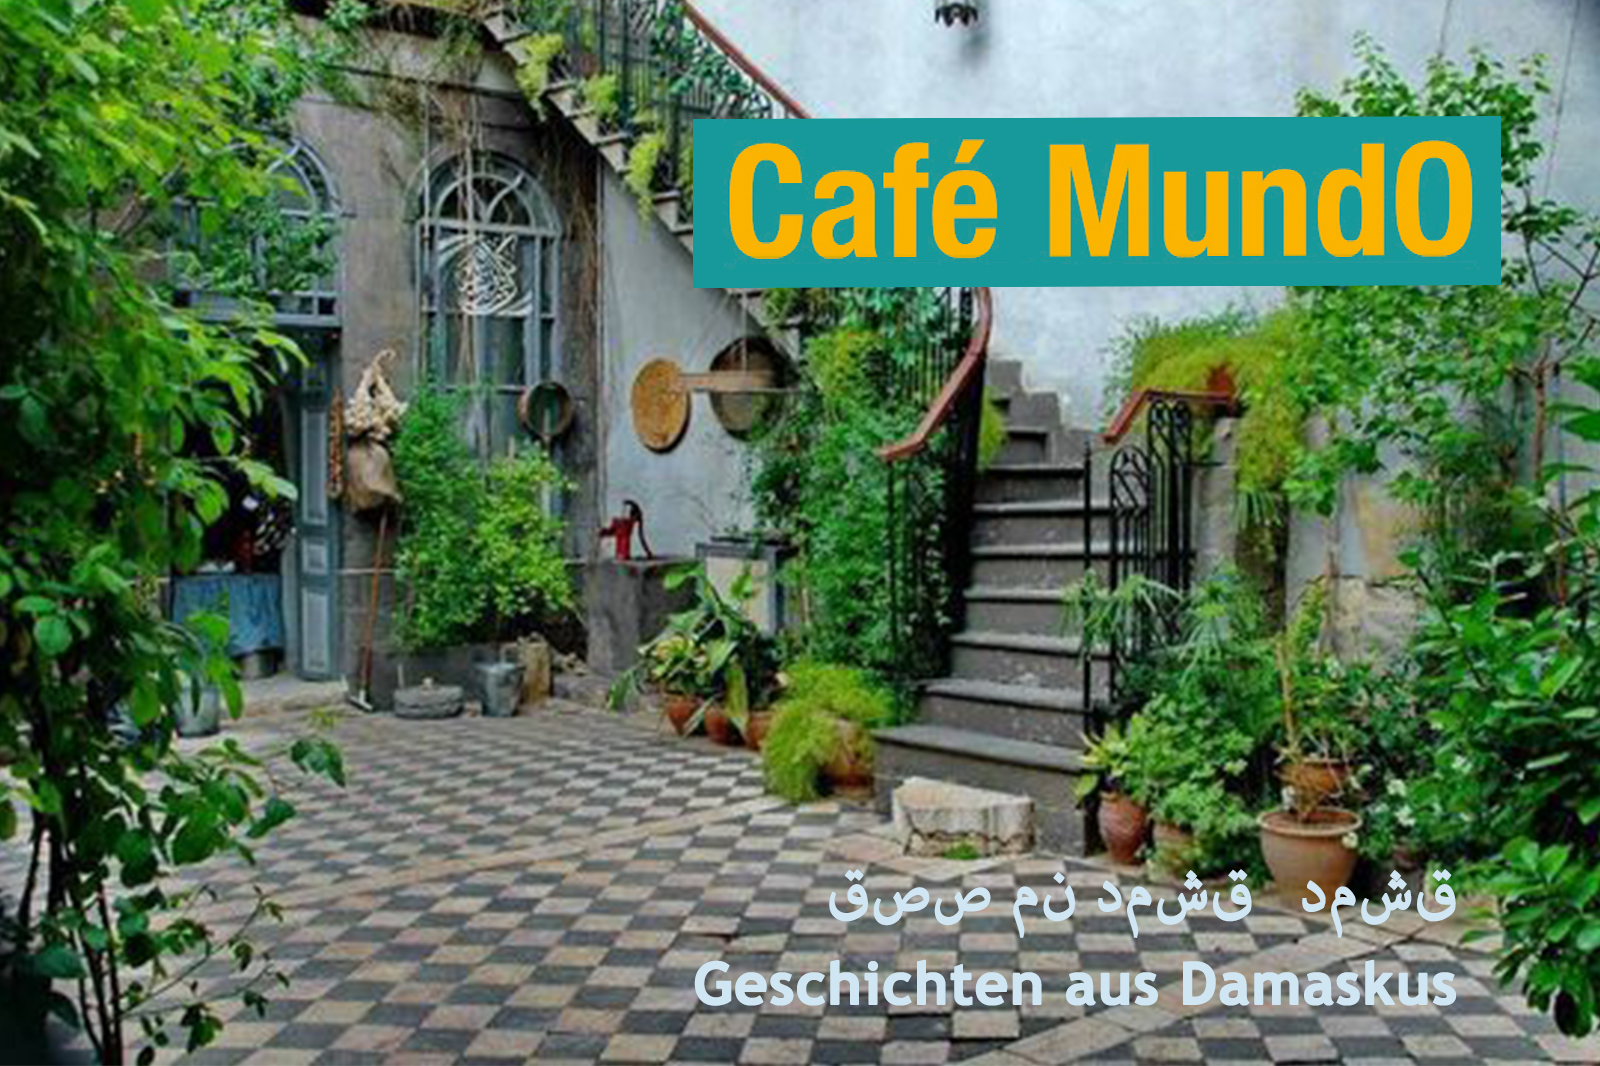 Cafe-MundO-Damaskus-2